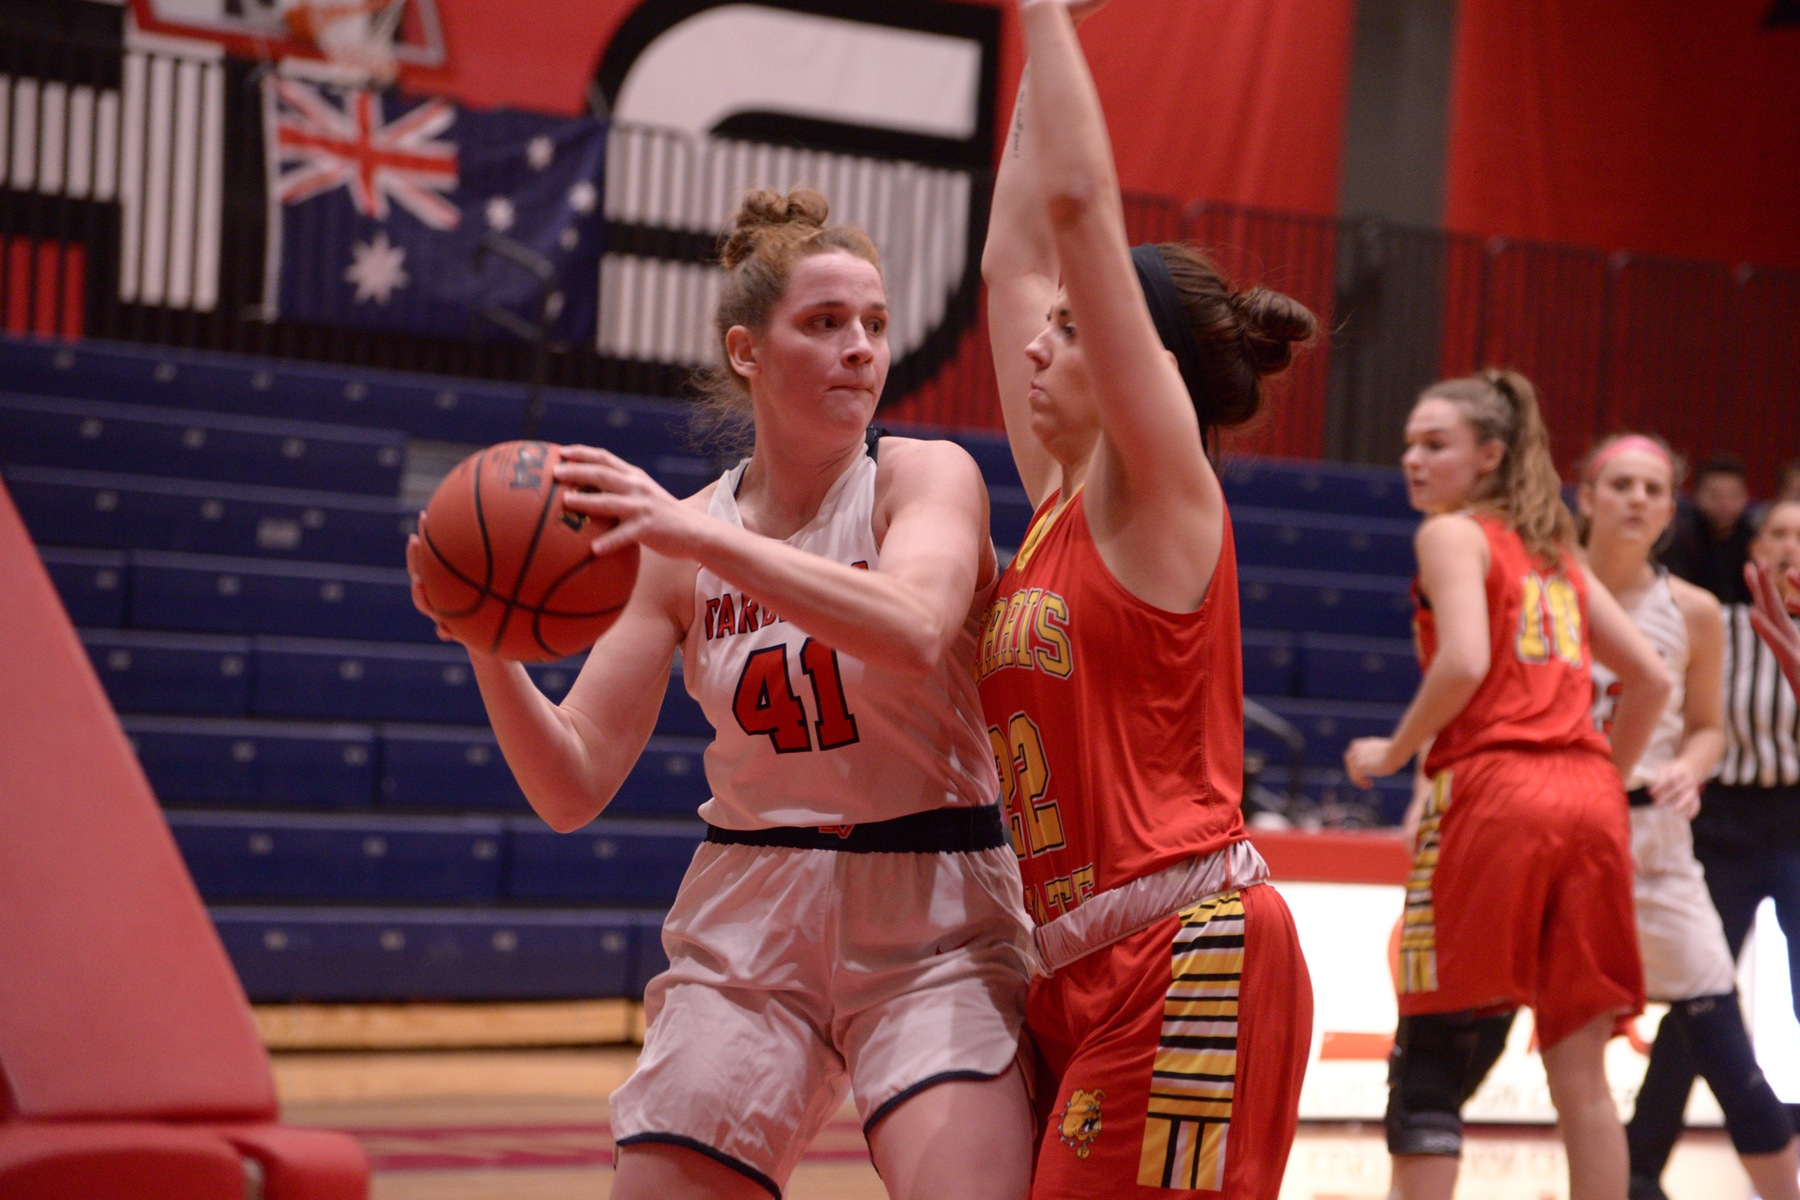 Lady Cardinals drop 60-56 contest to Bulldogs